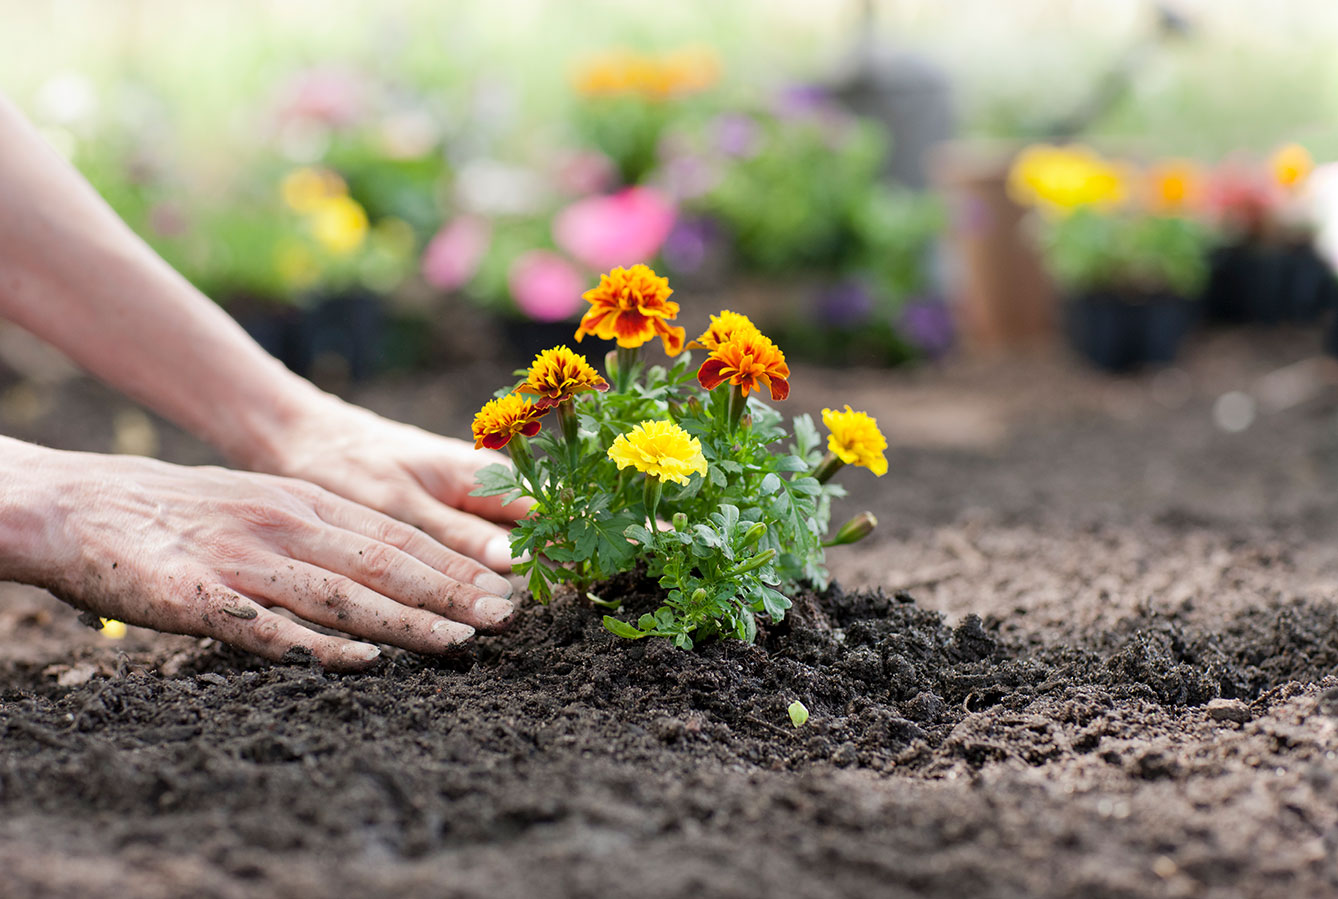 Planting marigold flowers